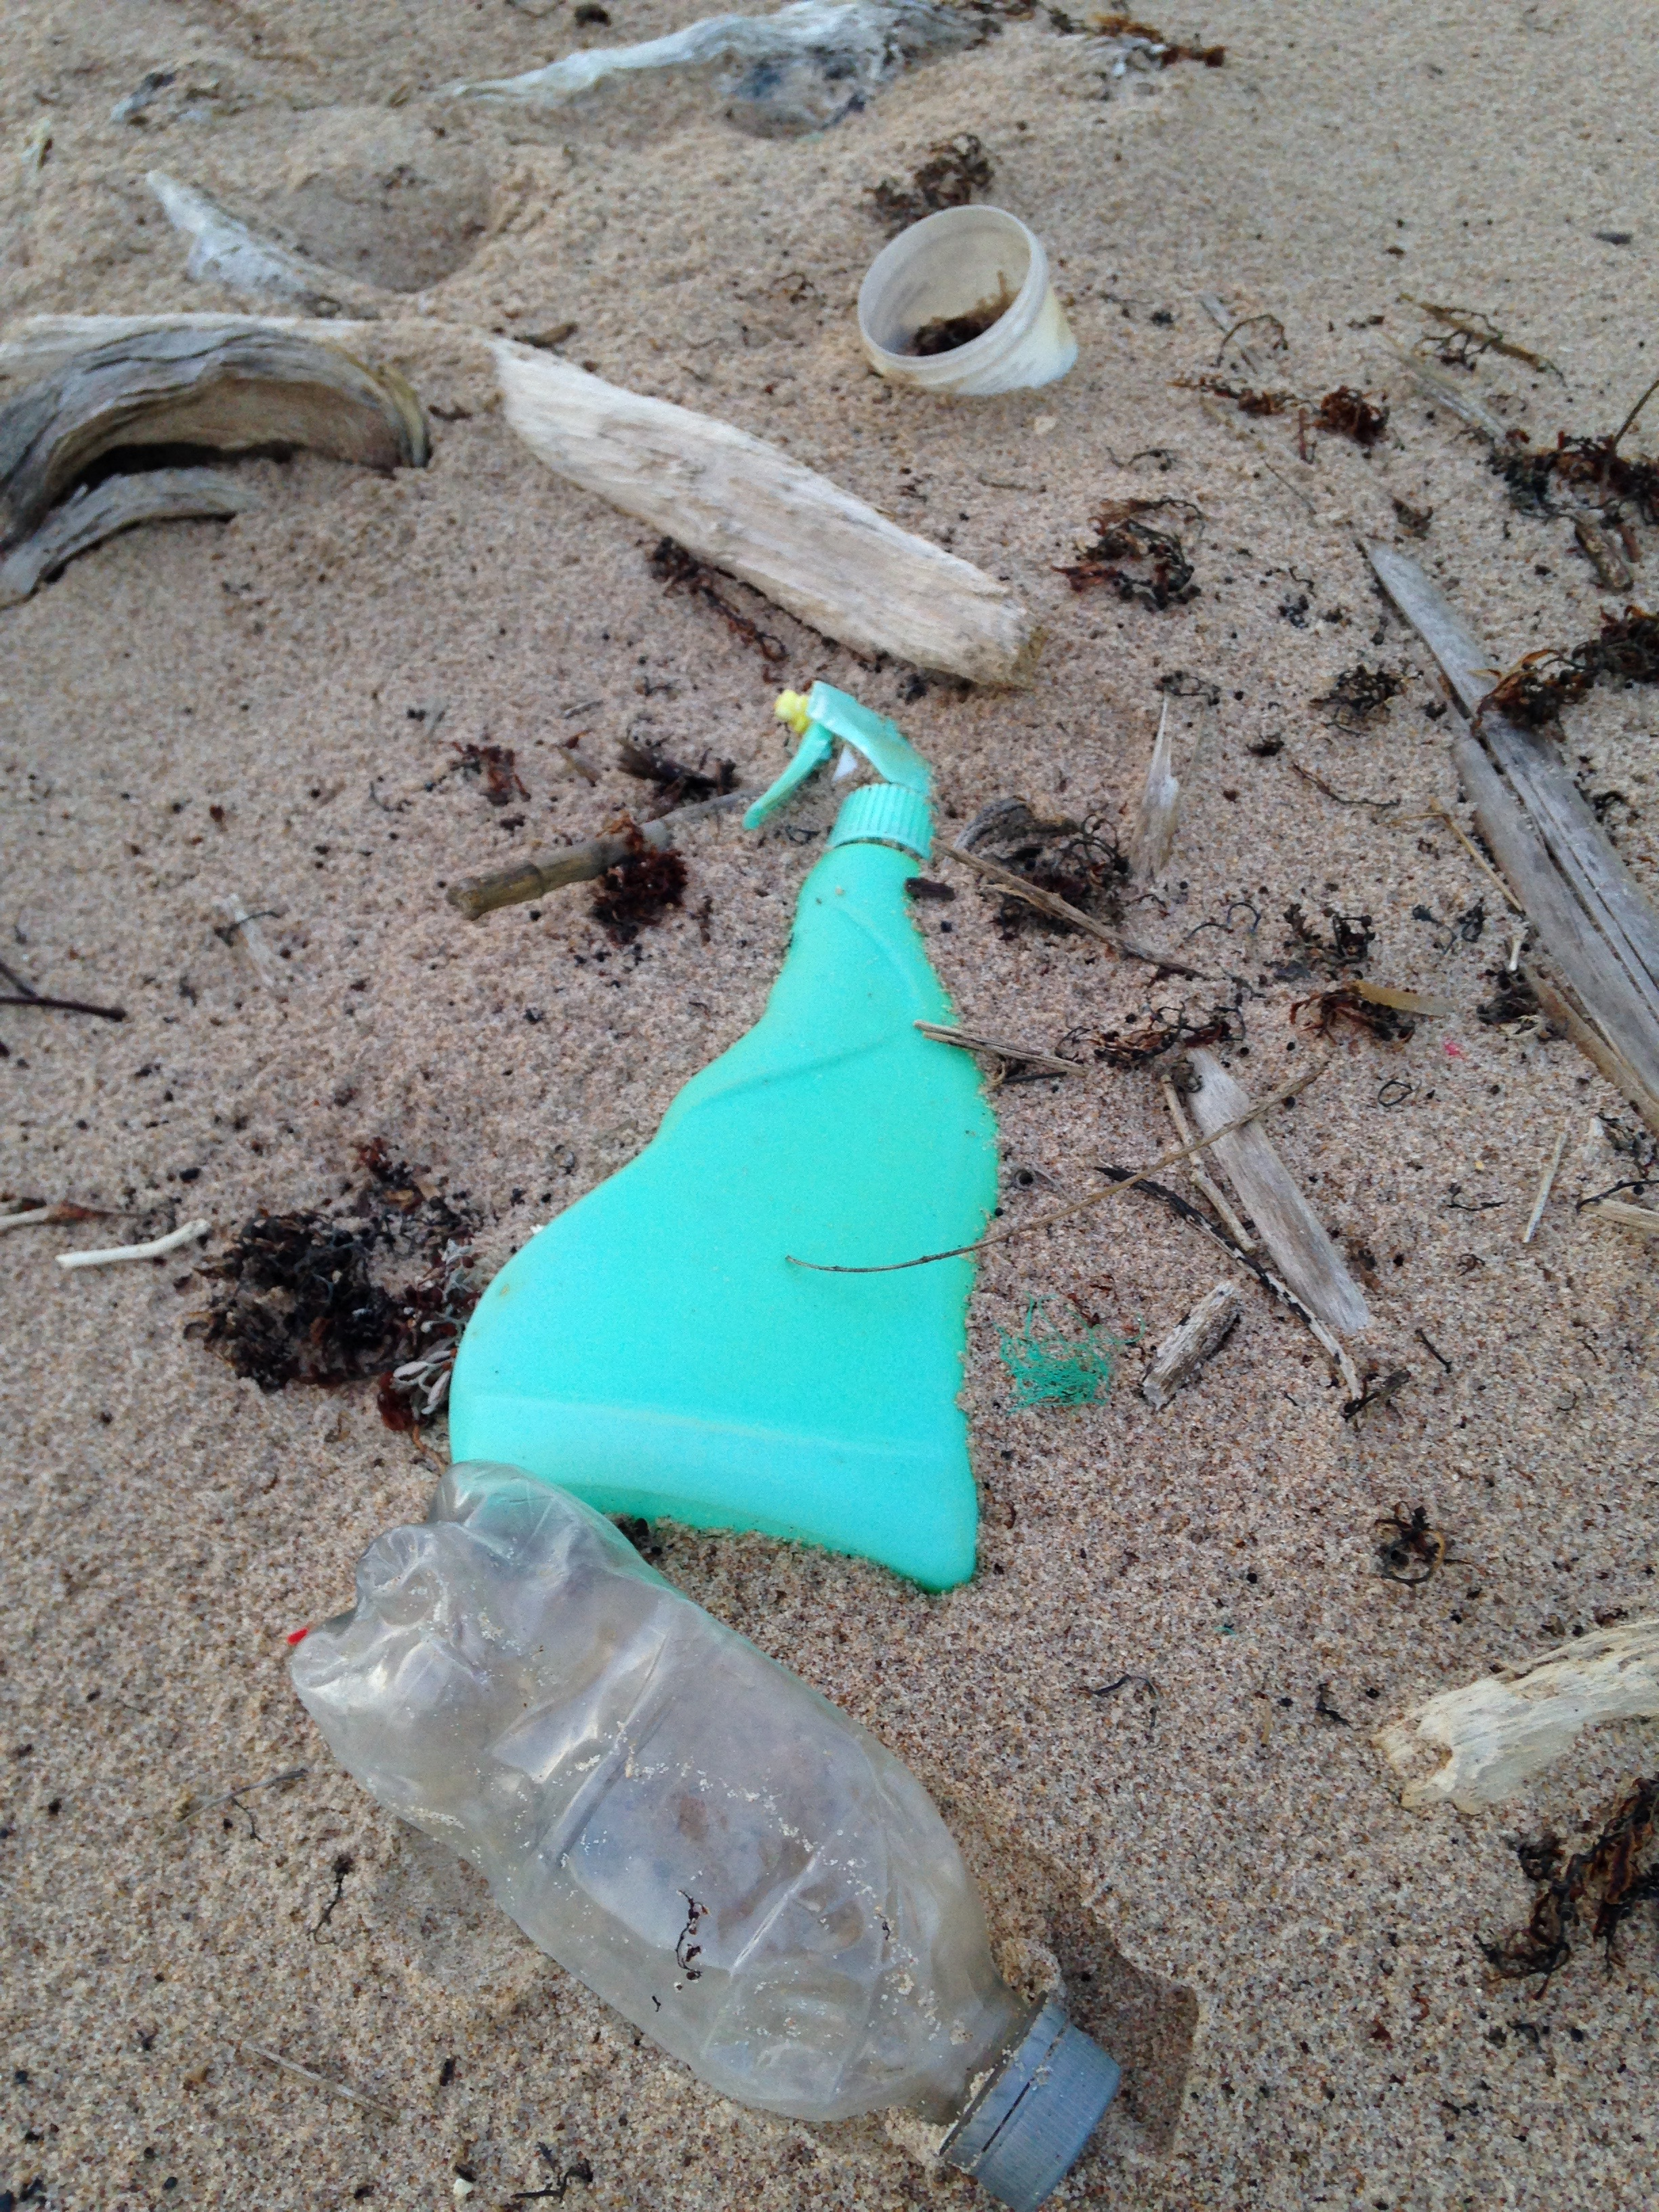 Fact: Plastic can be found even in remote areas - In fact, some of the highest concentrations of plastic have been found in remote areas.